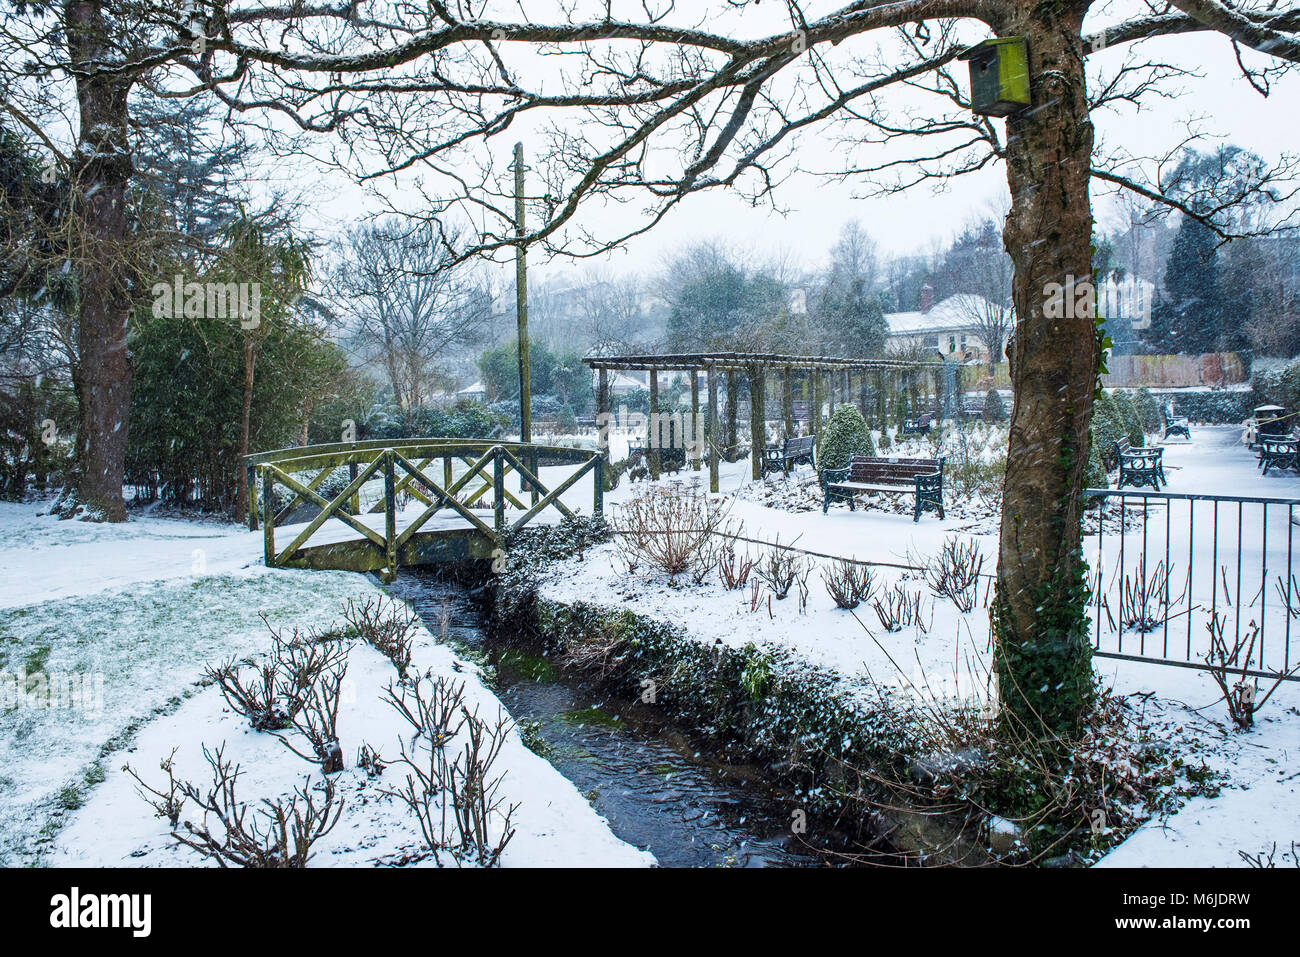 Heavy snowfall in Trenance Gardens in Newquay Cornwall. - Stock Image